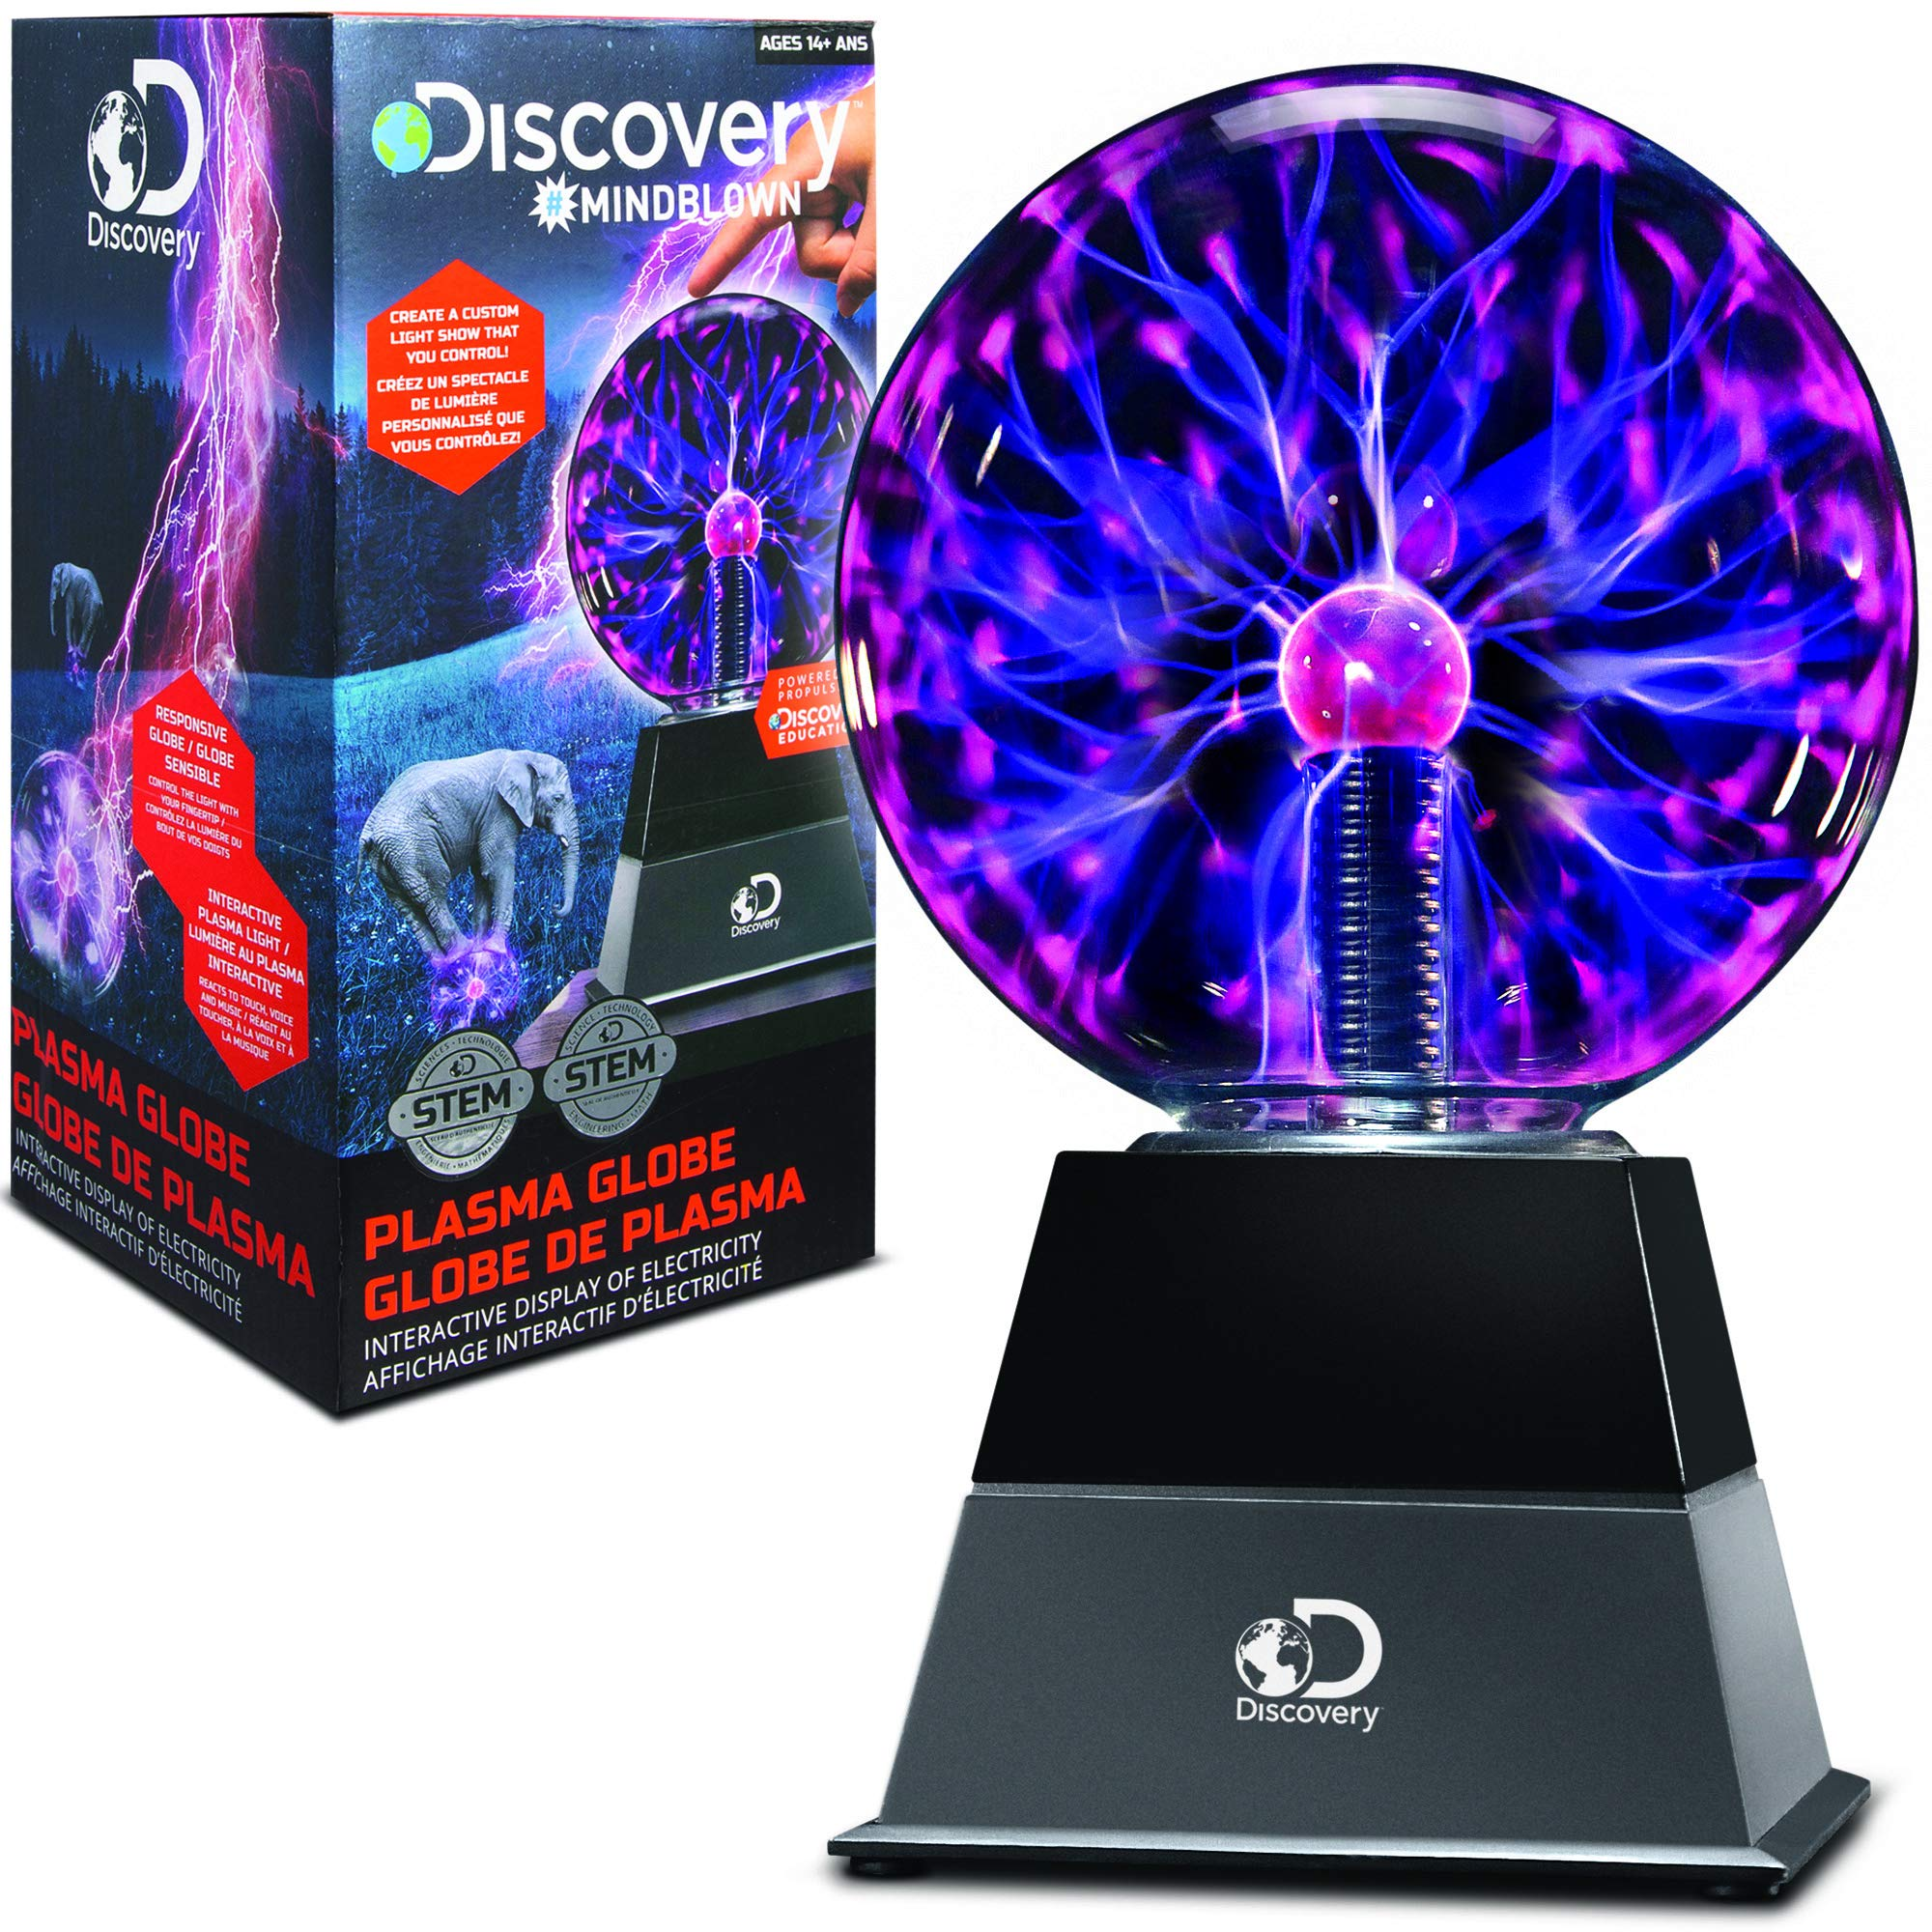 DISCOVERY KIDS 6'' Plasma Globe Lamp with Interactive Electronic Touch and Sound Sensitive Lightning and Tesla Coil, Includes AC Adapter, STEM Lava Lamp Style Light for Desk, Kids Room, and More by Discovery Kids (Image #2)